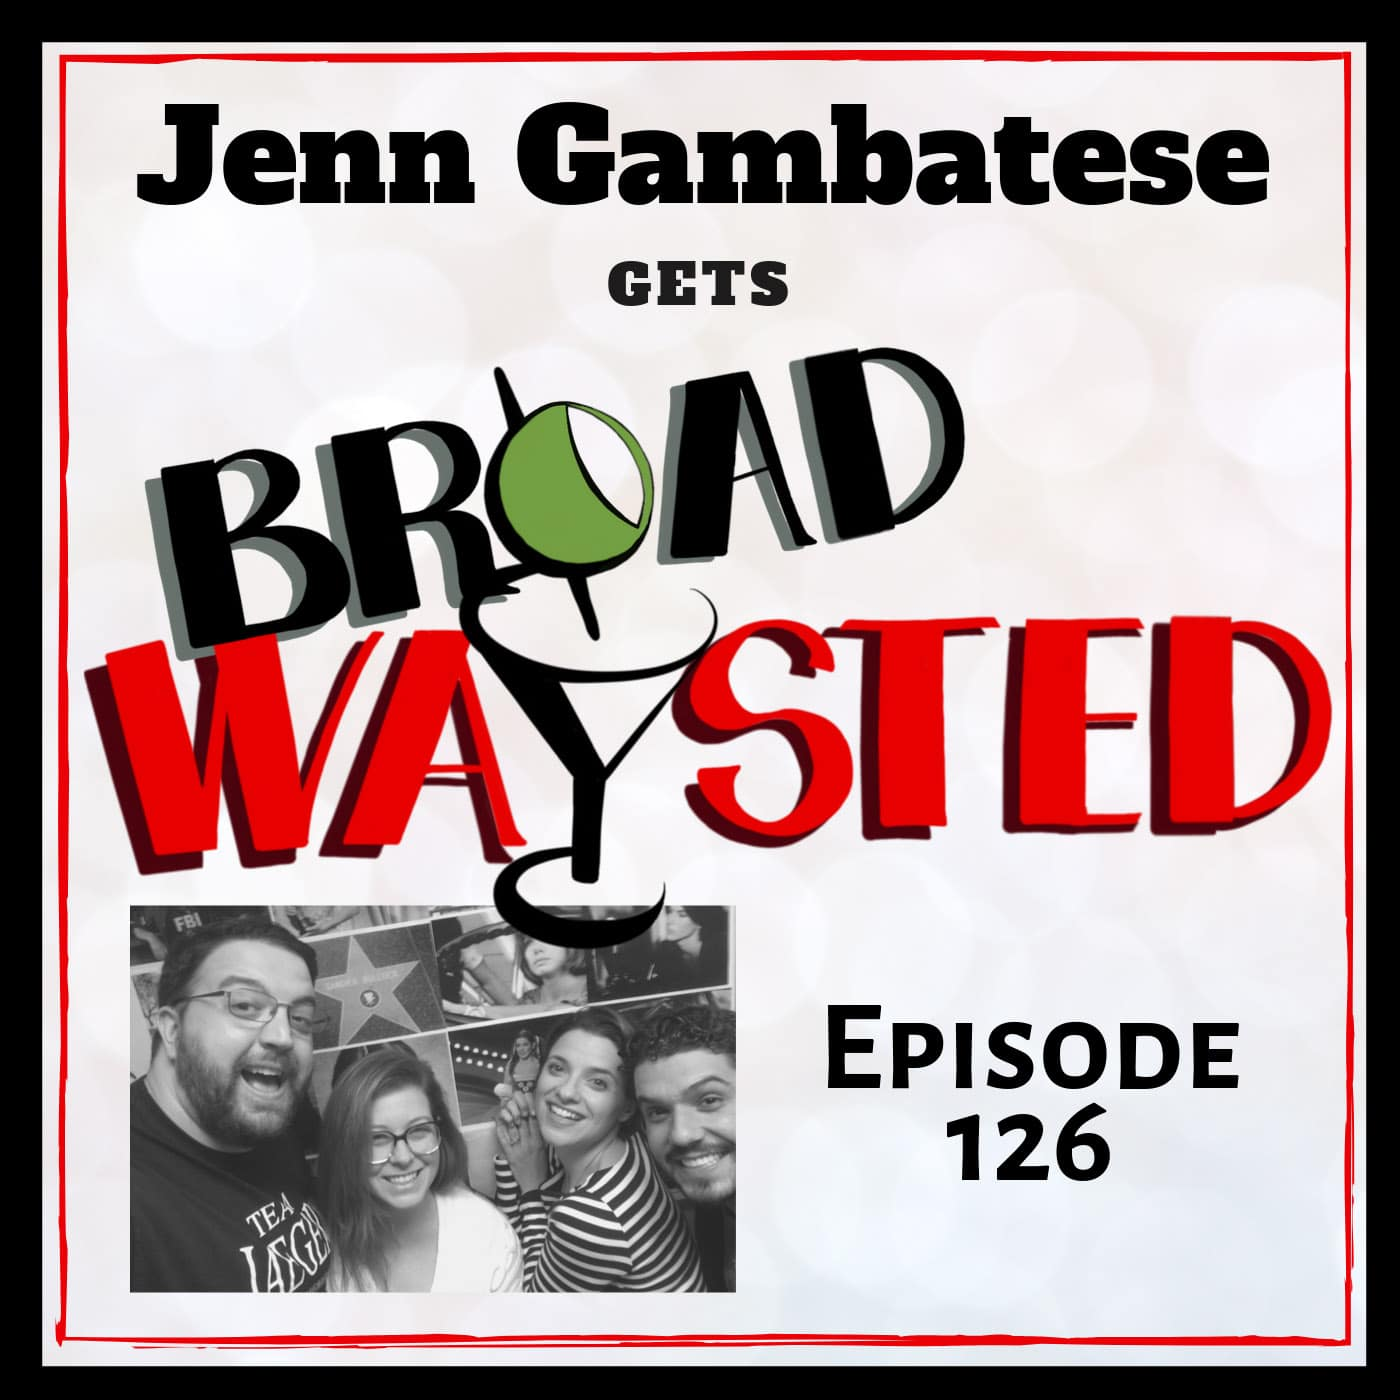 Broadwaysted Ep 126 Jenn Gambatese